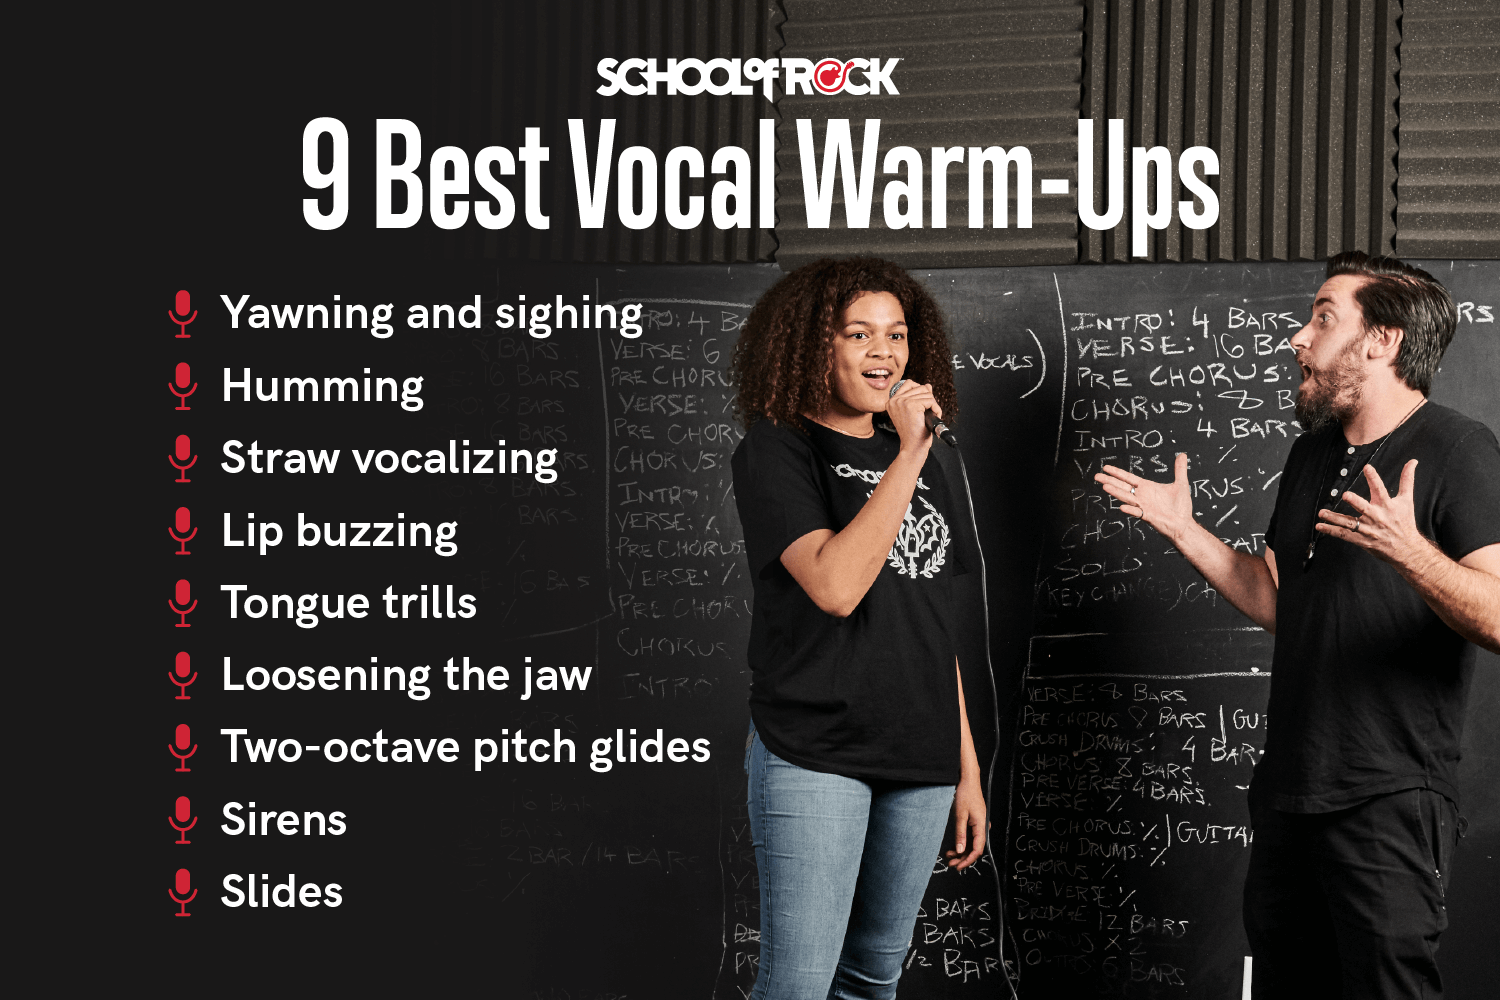 9 best vocal warm ups from School of Rock